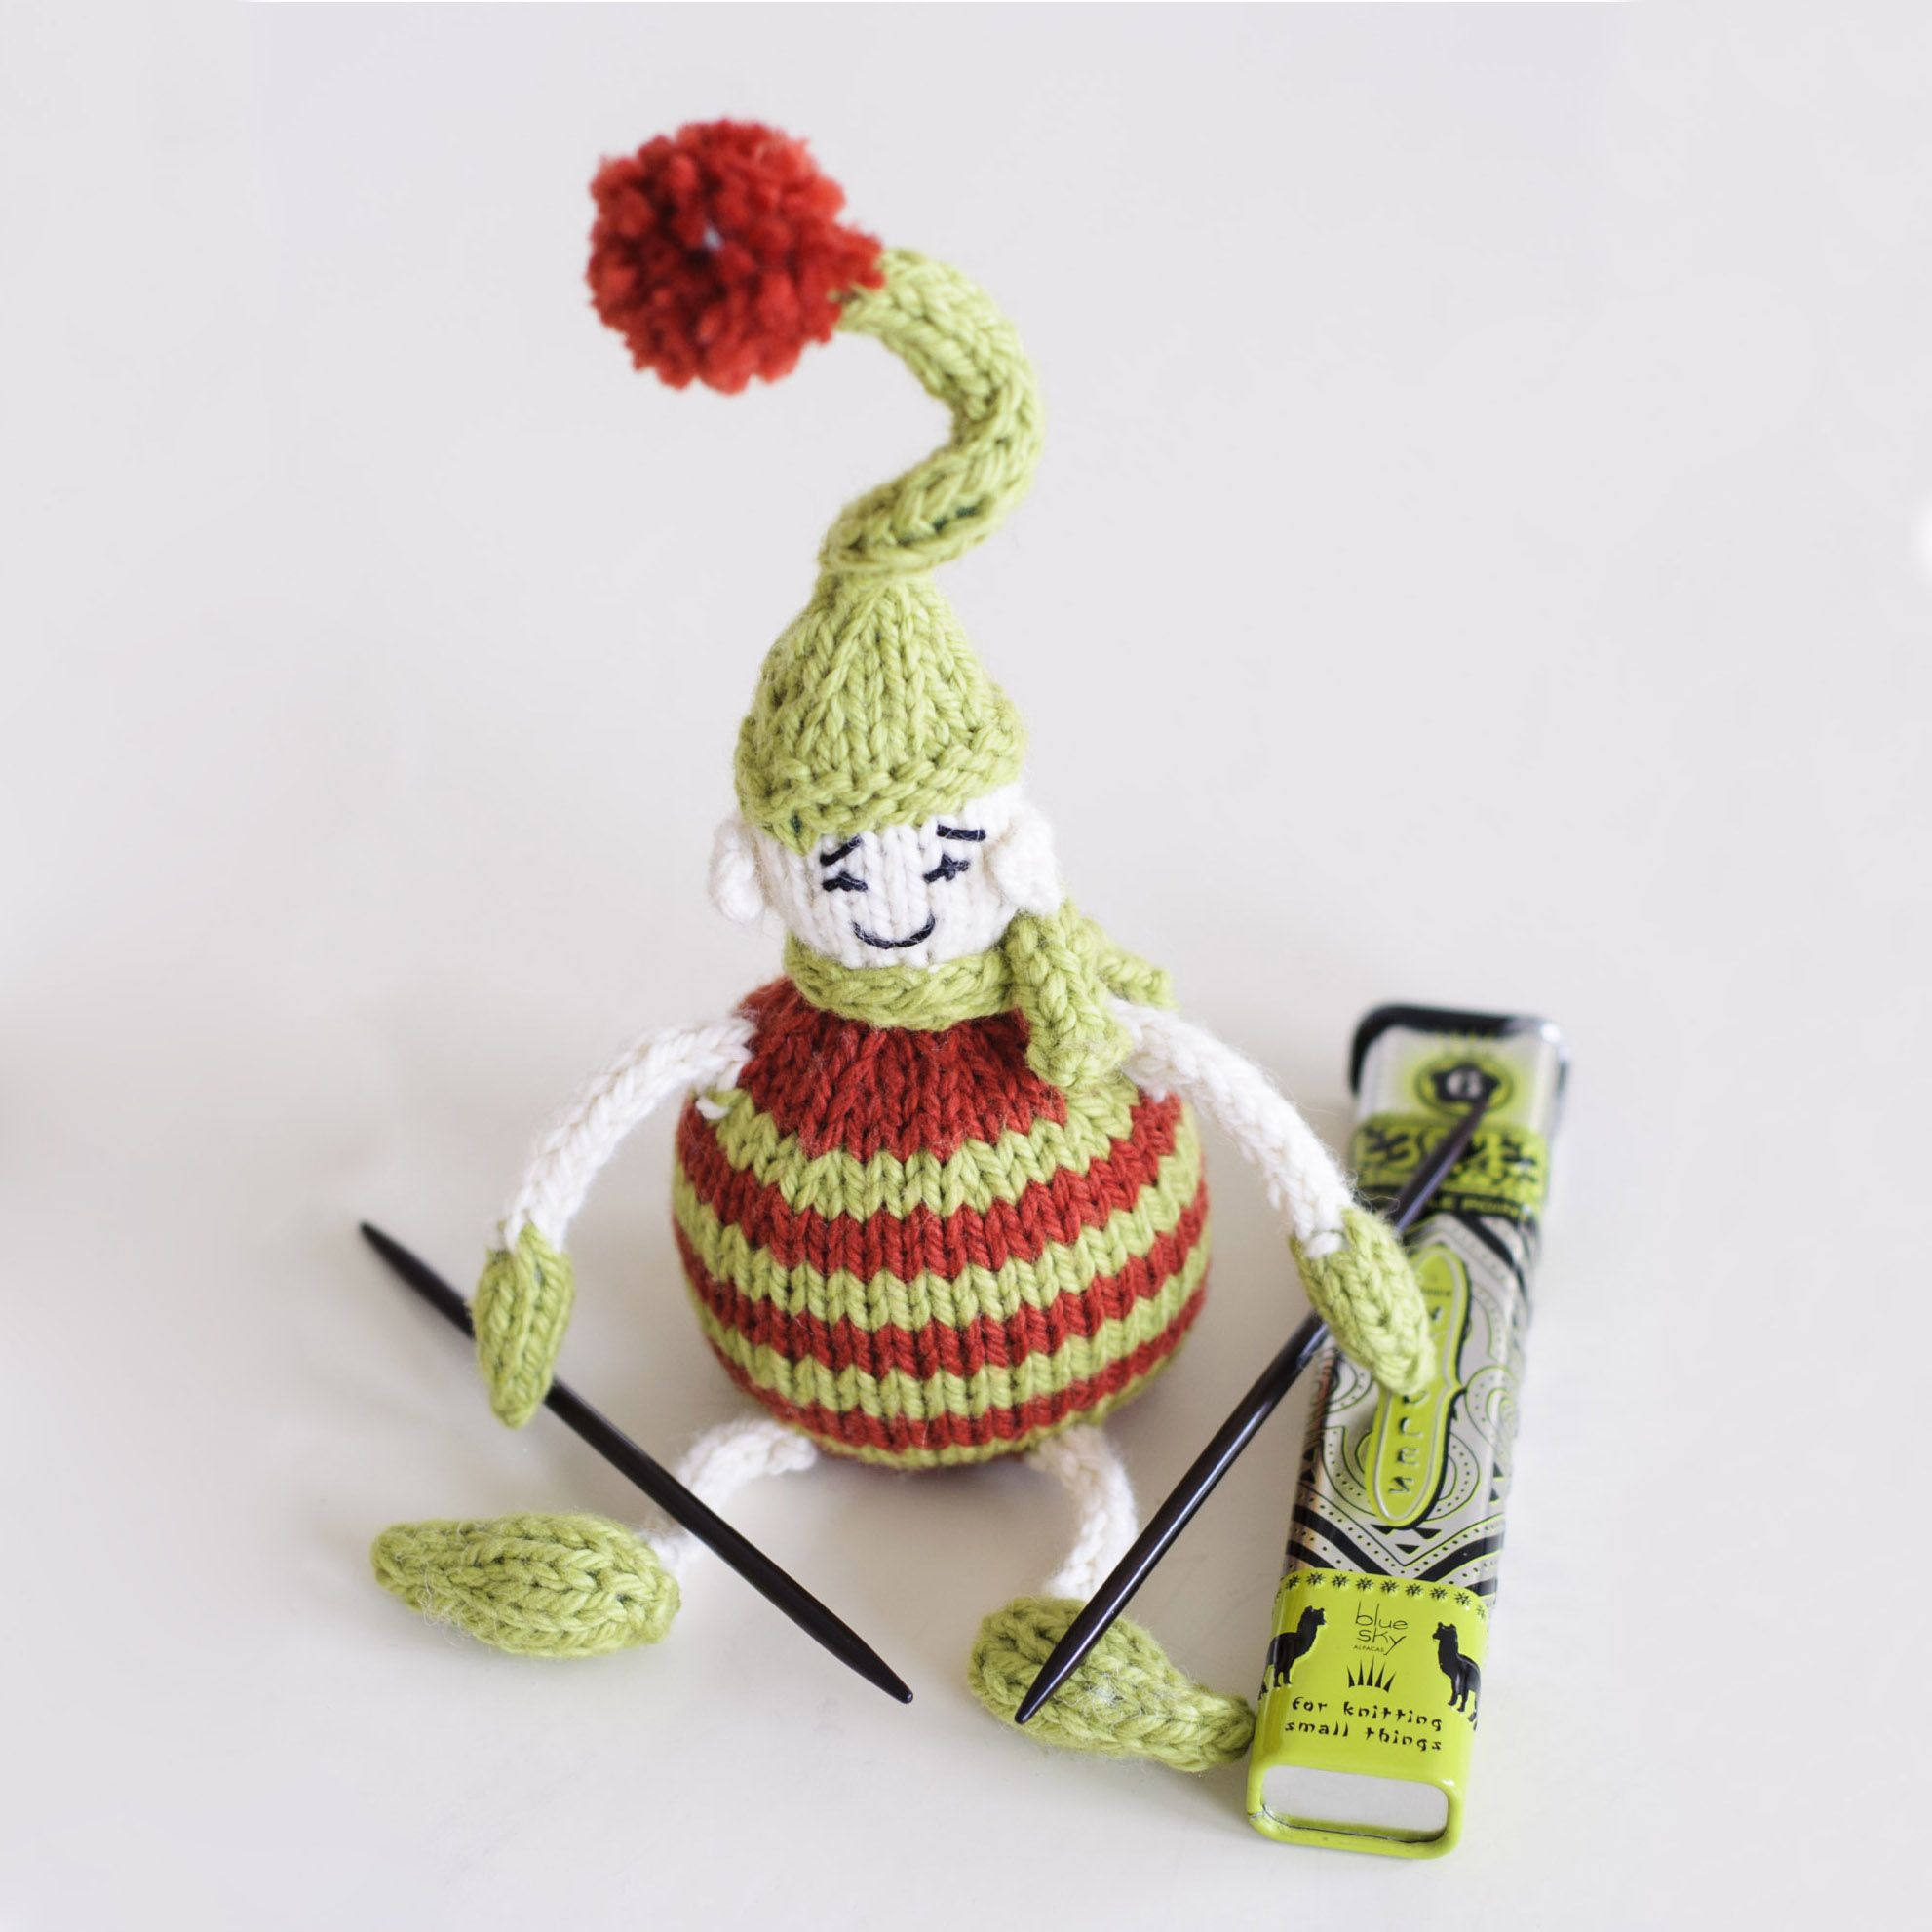 Looks like our Tiny Elf has taken up knitting - what do you think he ...